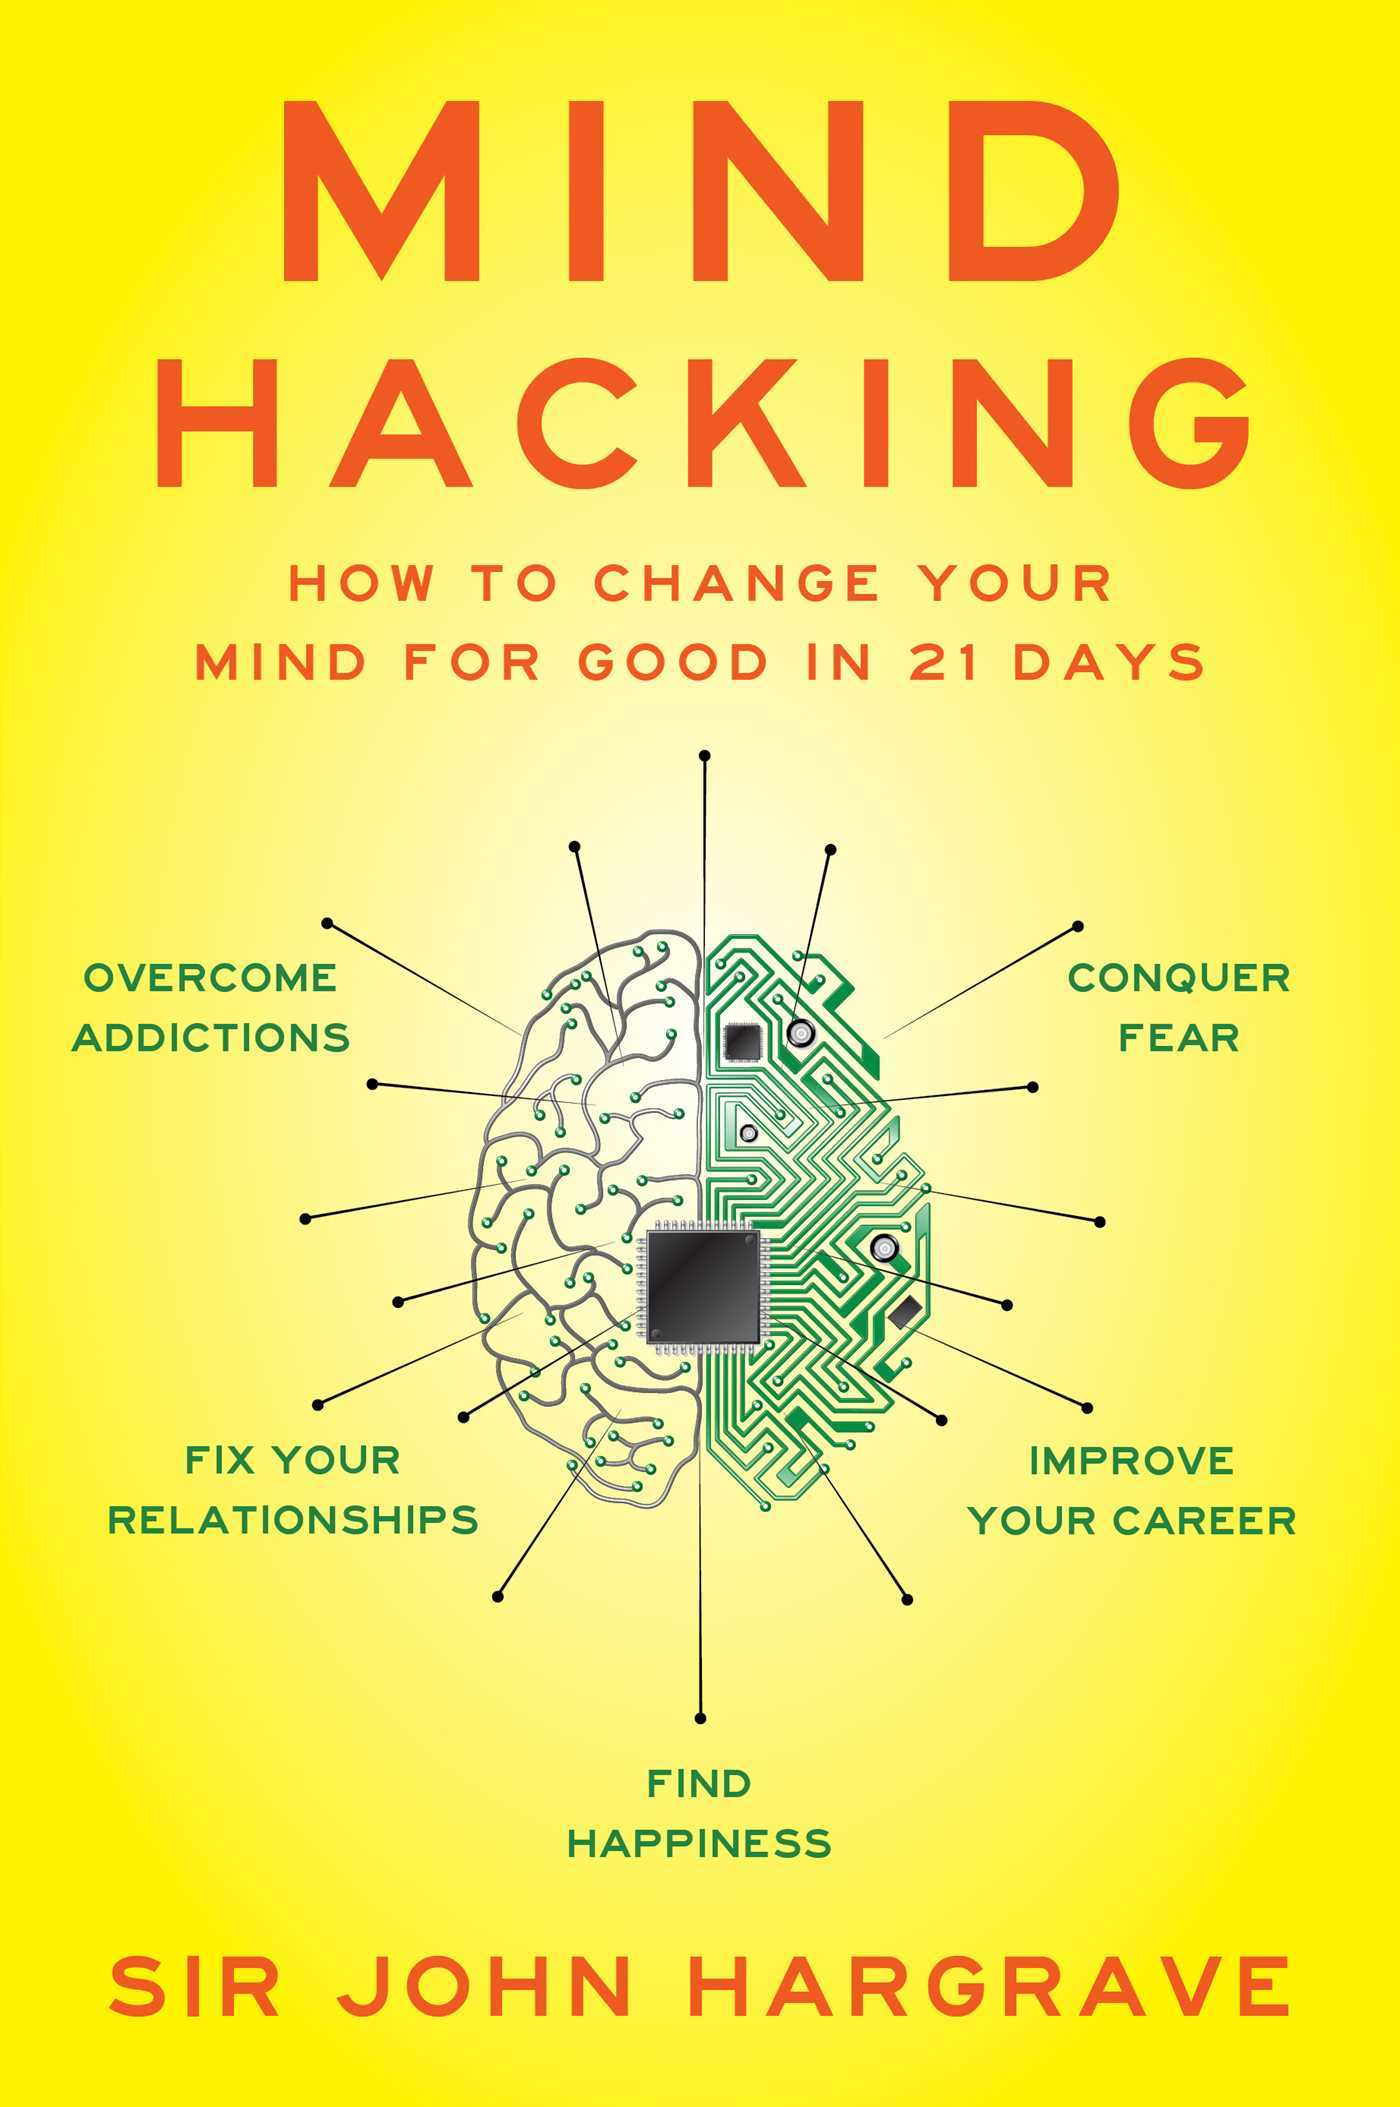 Mind Hacking: How to Change Your Mind for Good in 21 Days John Hargrave